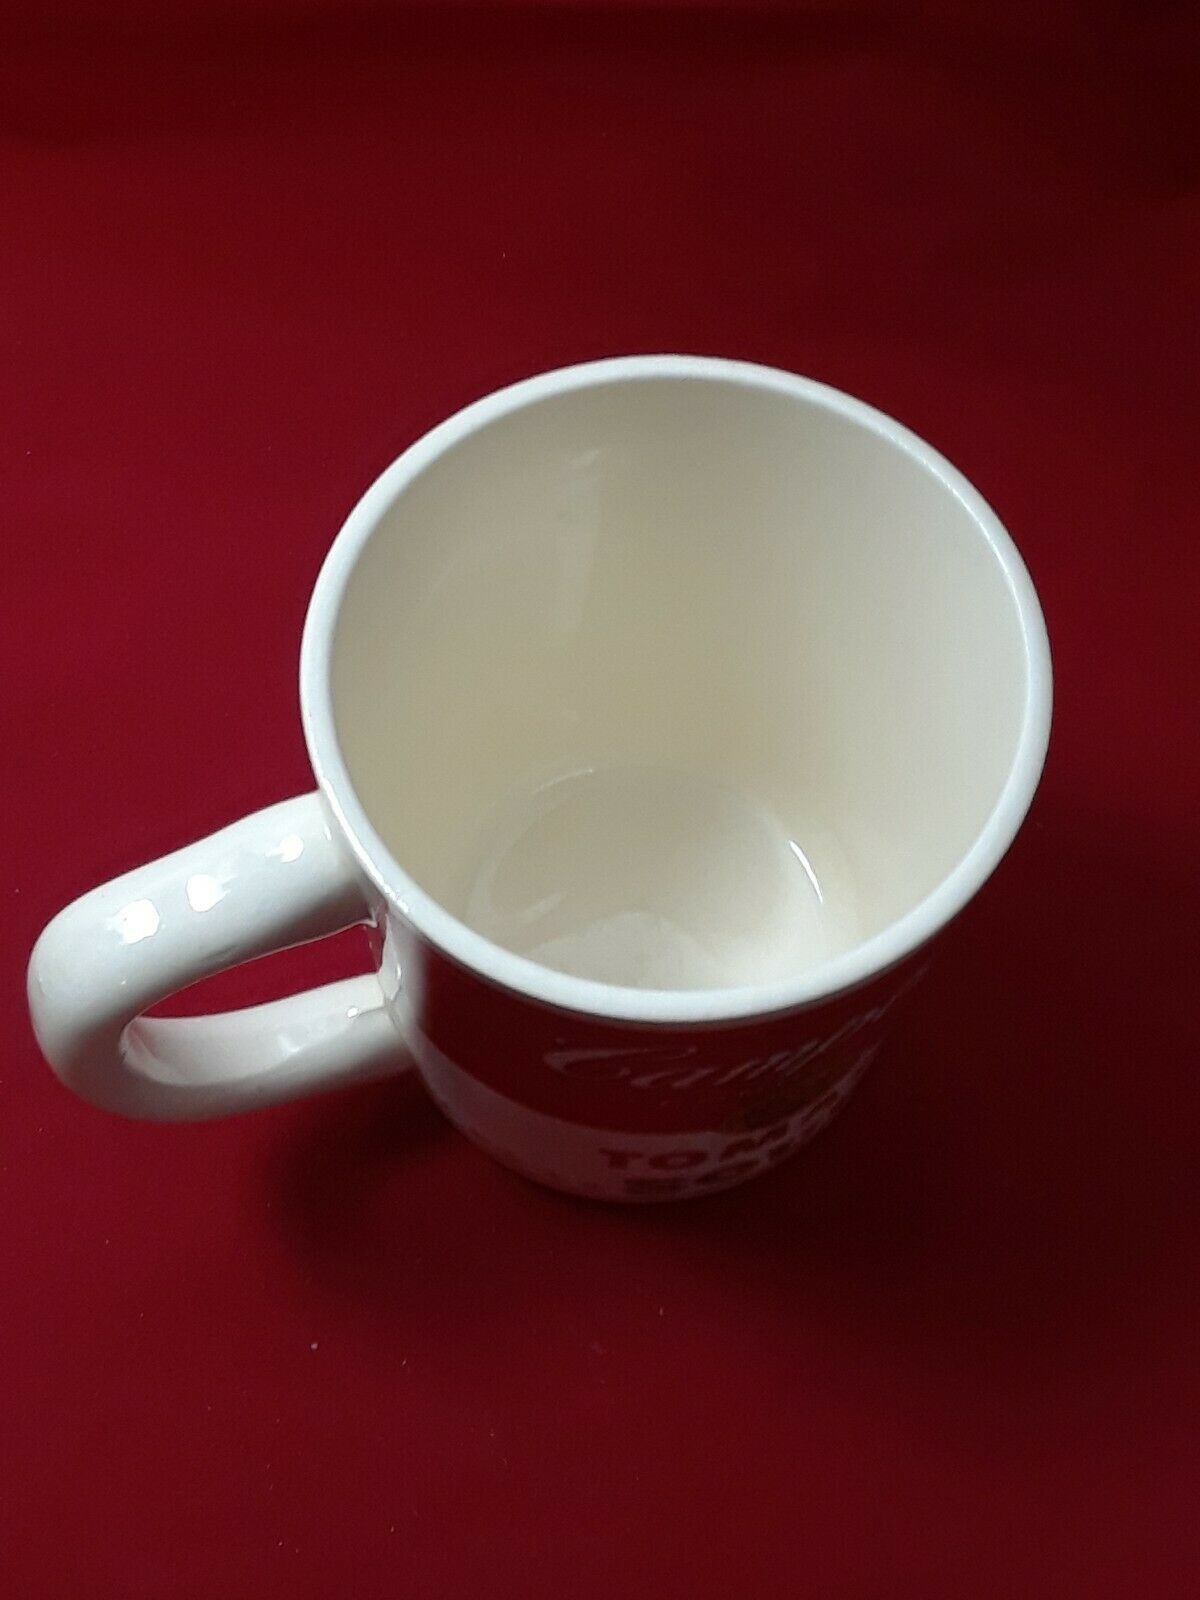 Collectible Campbell's Tomato Soup Mug Cup 8 oz in The Original Styrofoam Mailer image 9